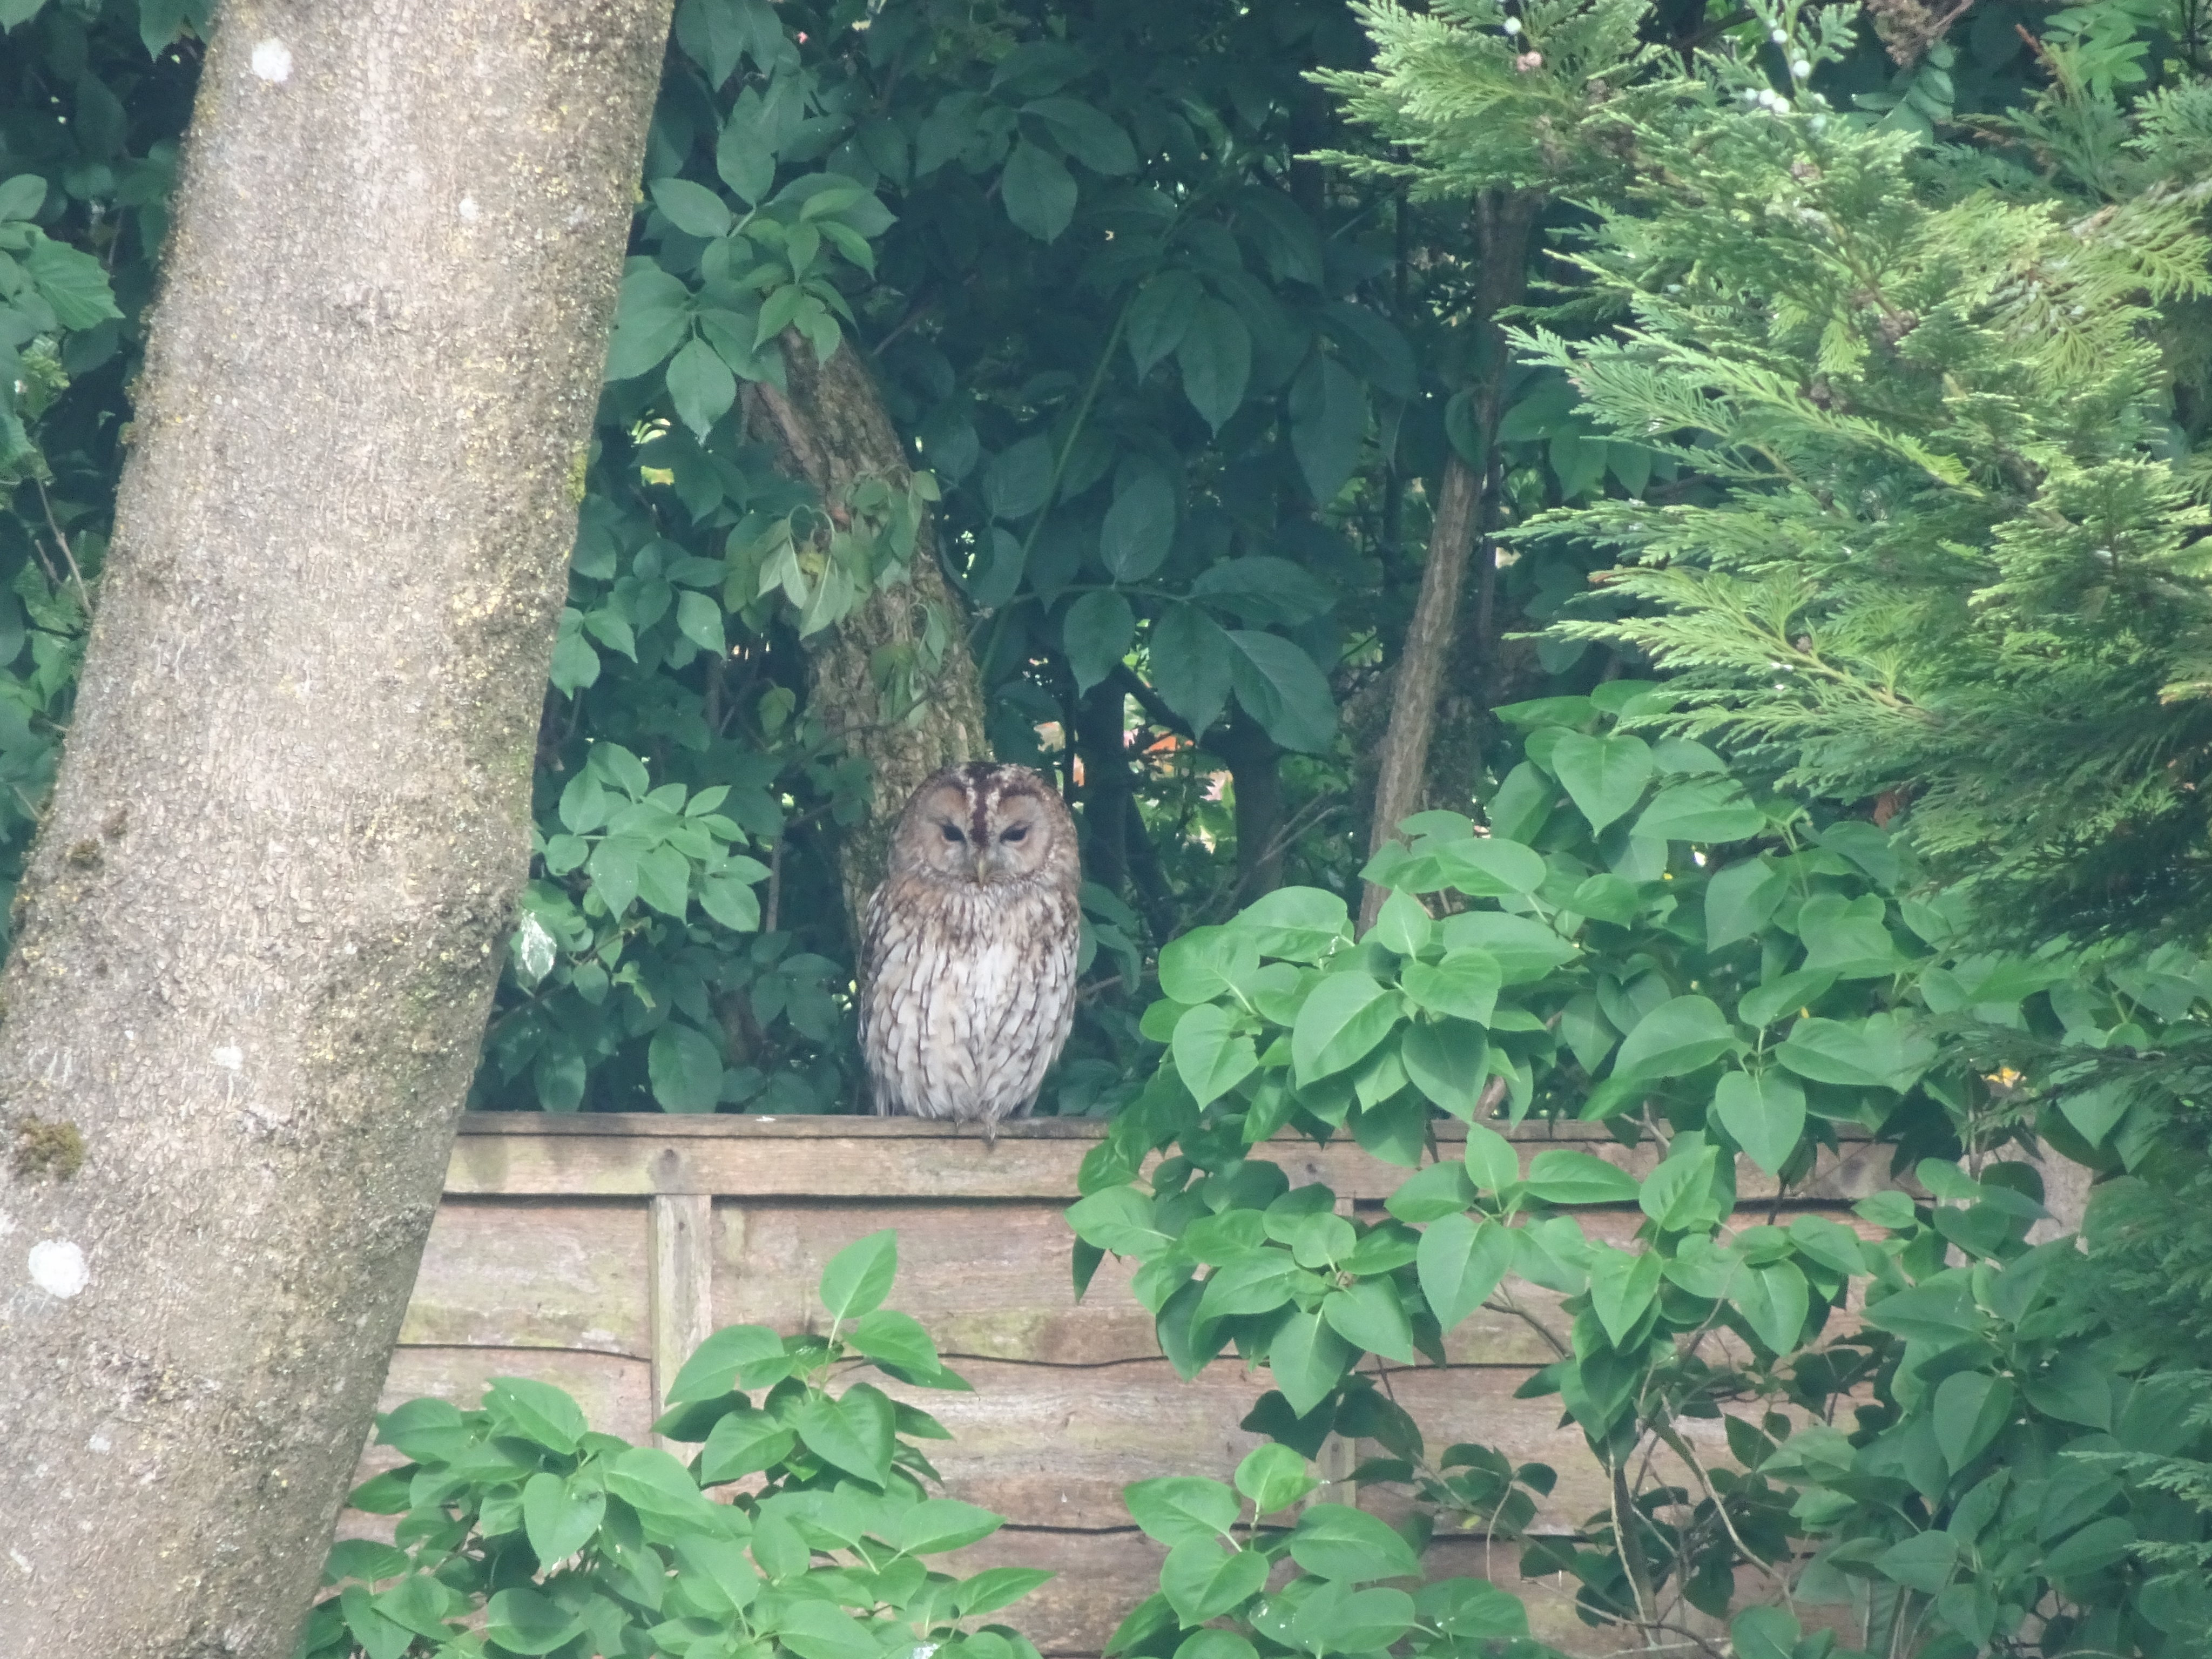 Tawny Owl on the fence